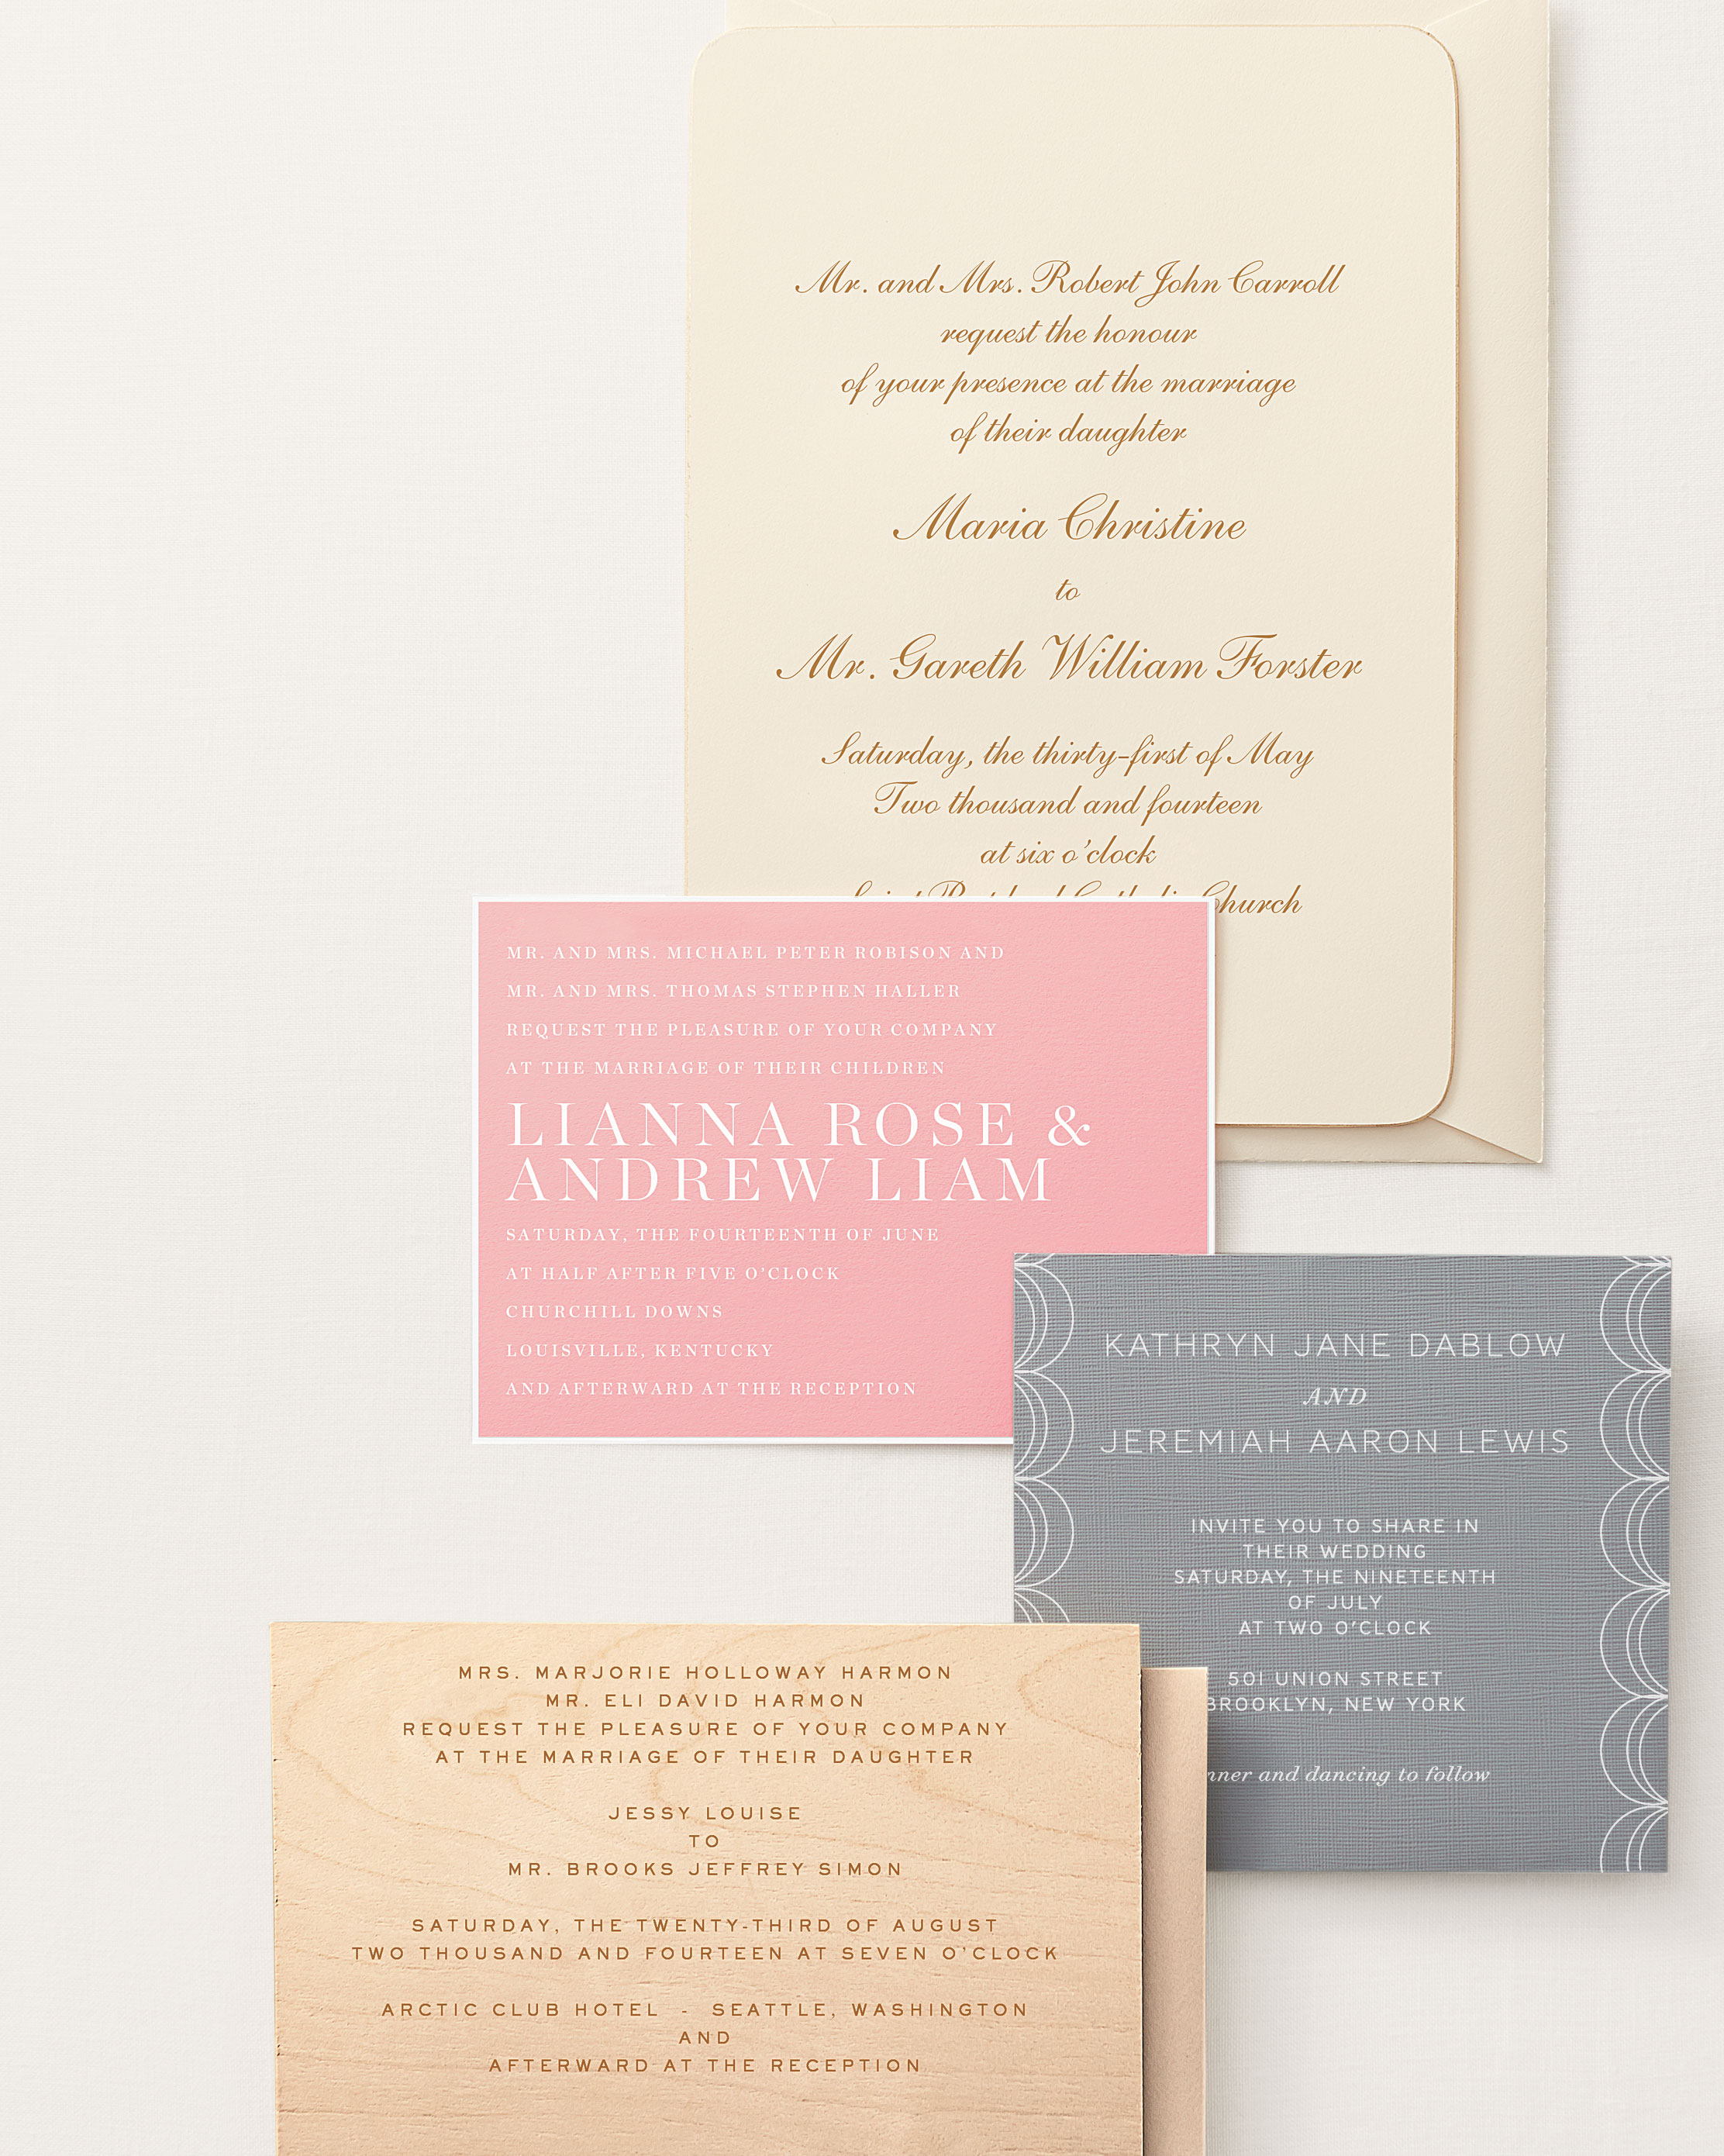 Wedding Invitation Wording Etiquette.8 Details To Include When Wording Your Wedding Invitation Martha